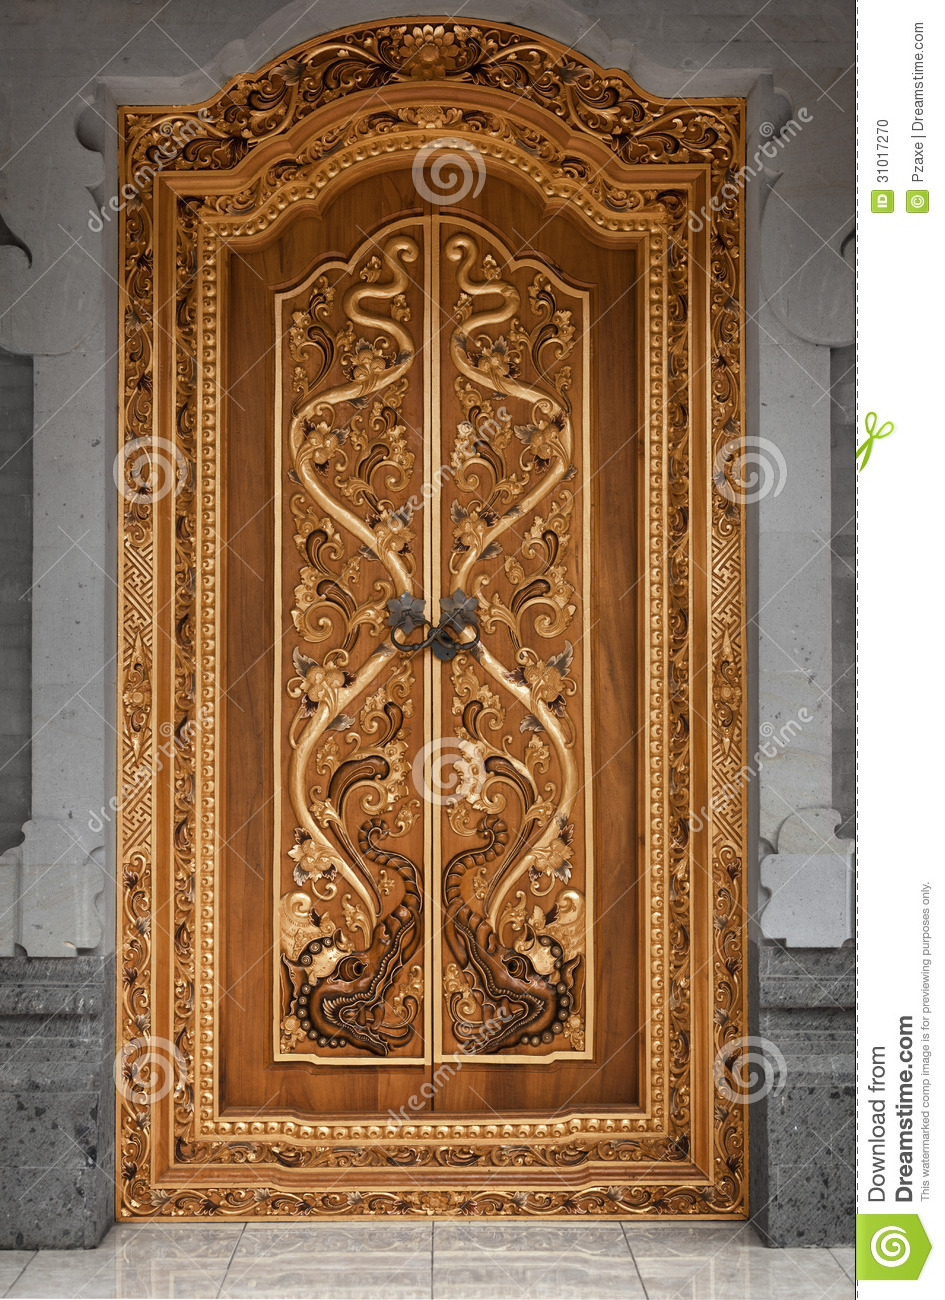 wooden door of an old temple with carvings indonesia